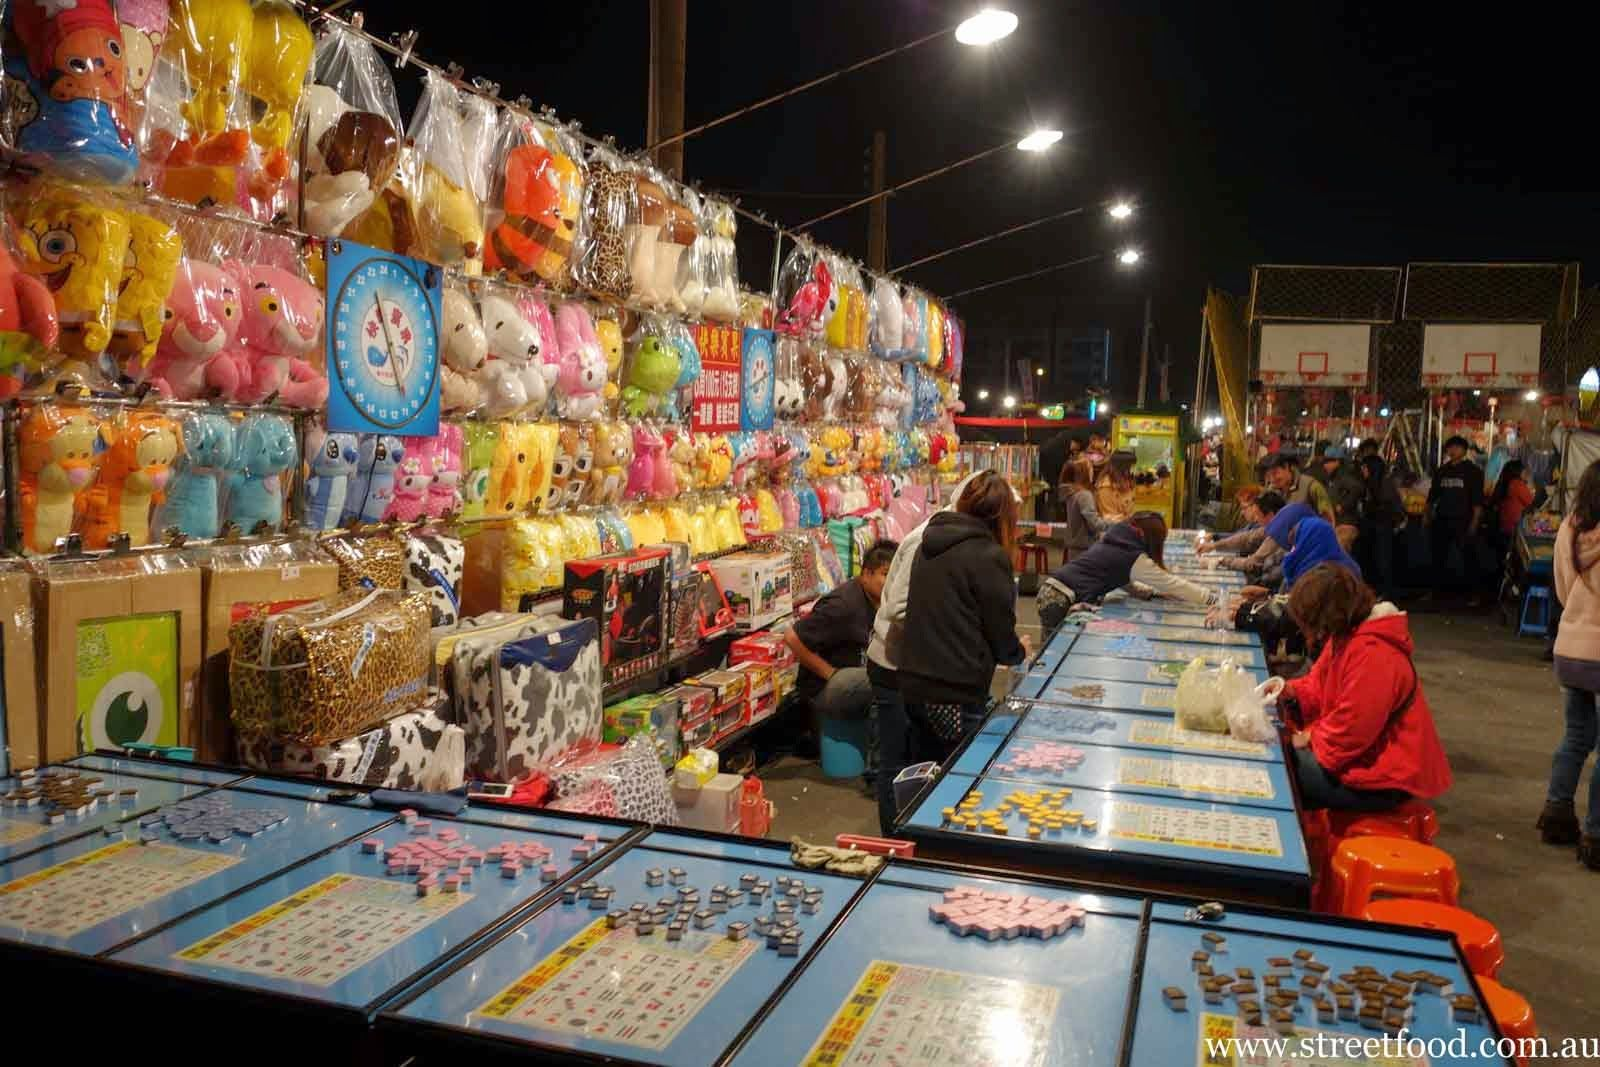 Carnival games in Taiwan night markets.